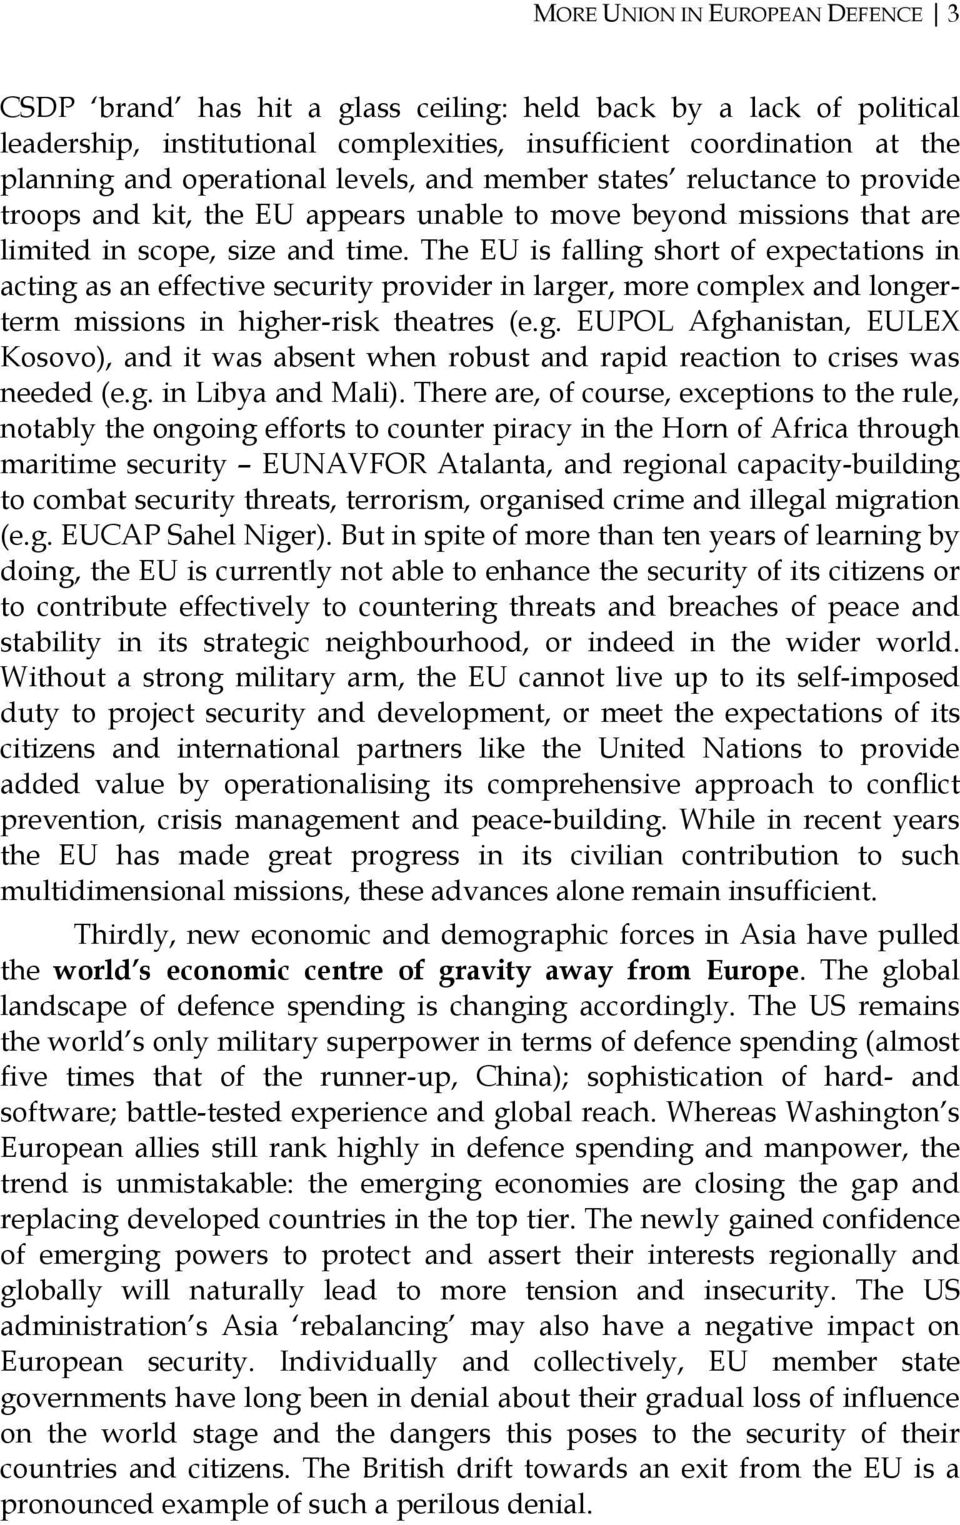 The EU is falling short of expectations in acting as an effective security provider in larger, more complex and longerterm missions in higher-risk theatres (e.g. EUPOL Afghanistan, EULEX Kosovo), and it was absent when robust and rapid reaction to crises was needed (e.